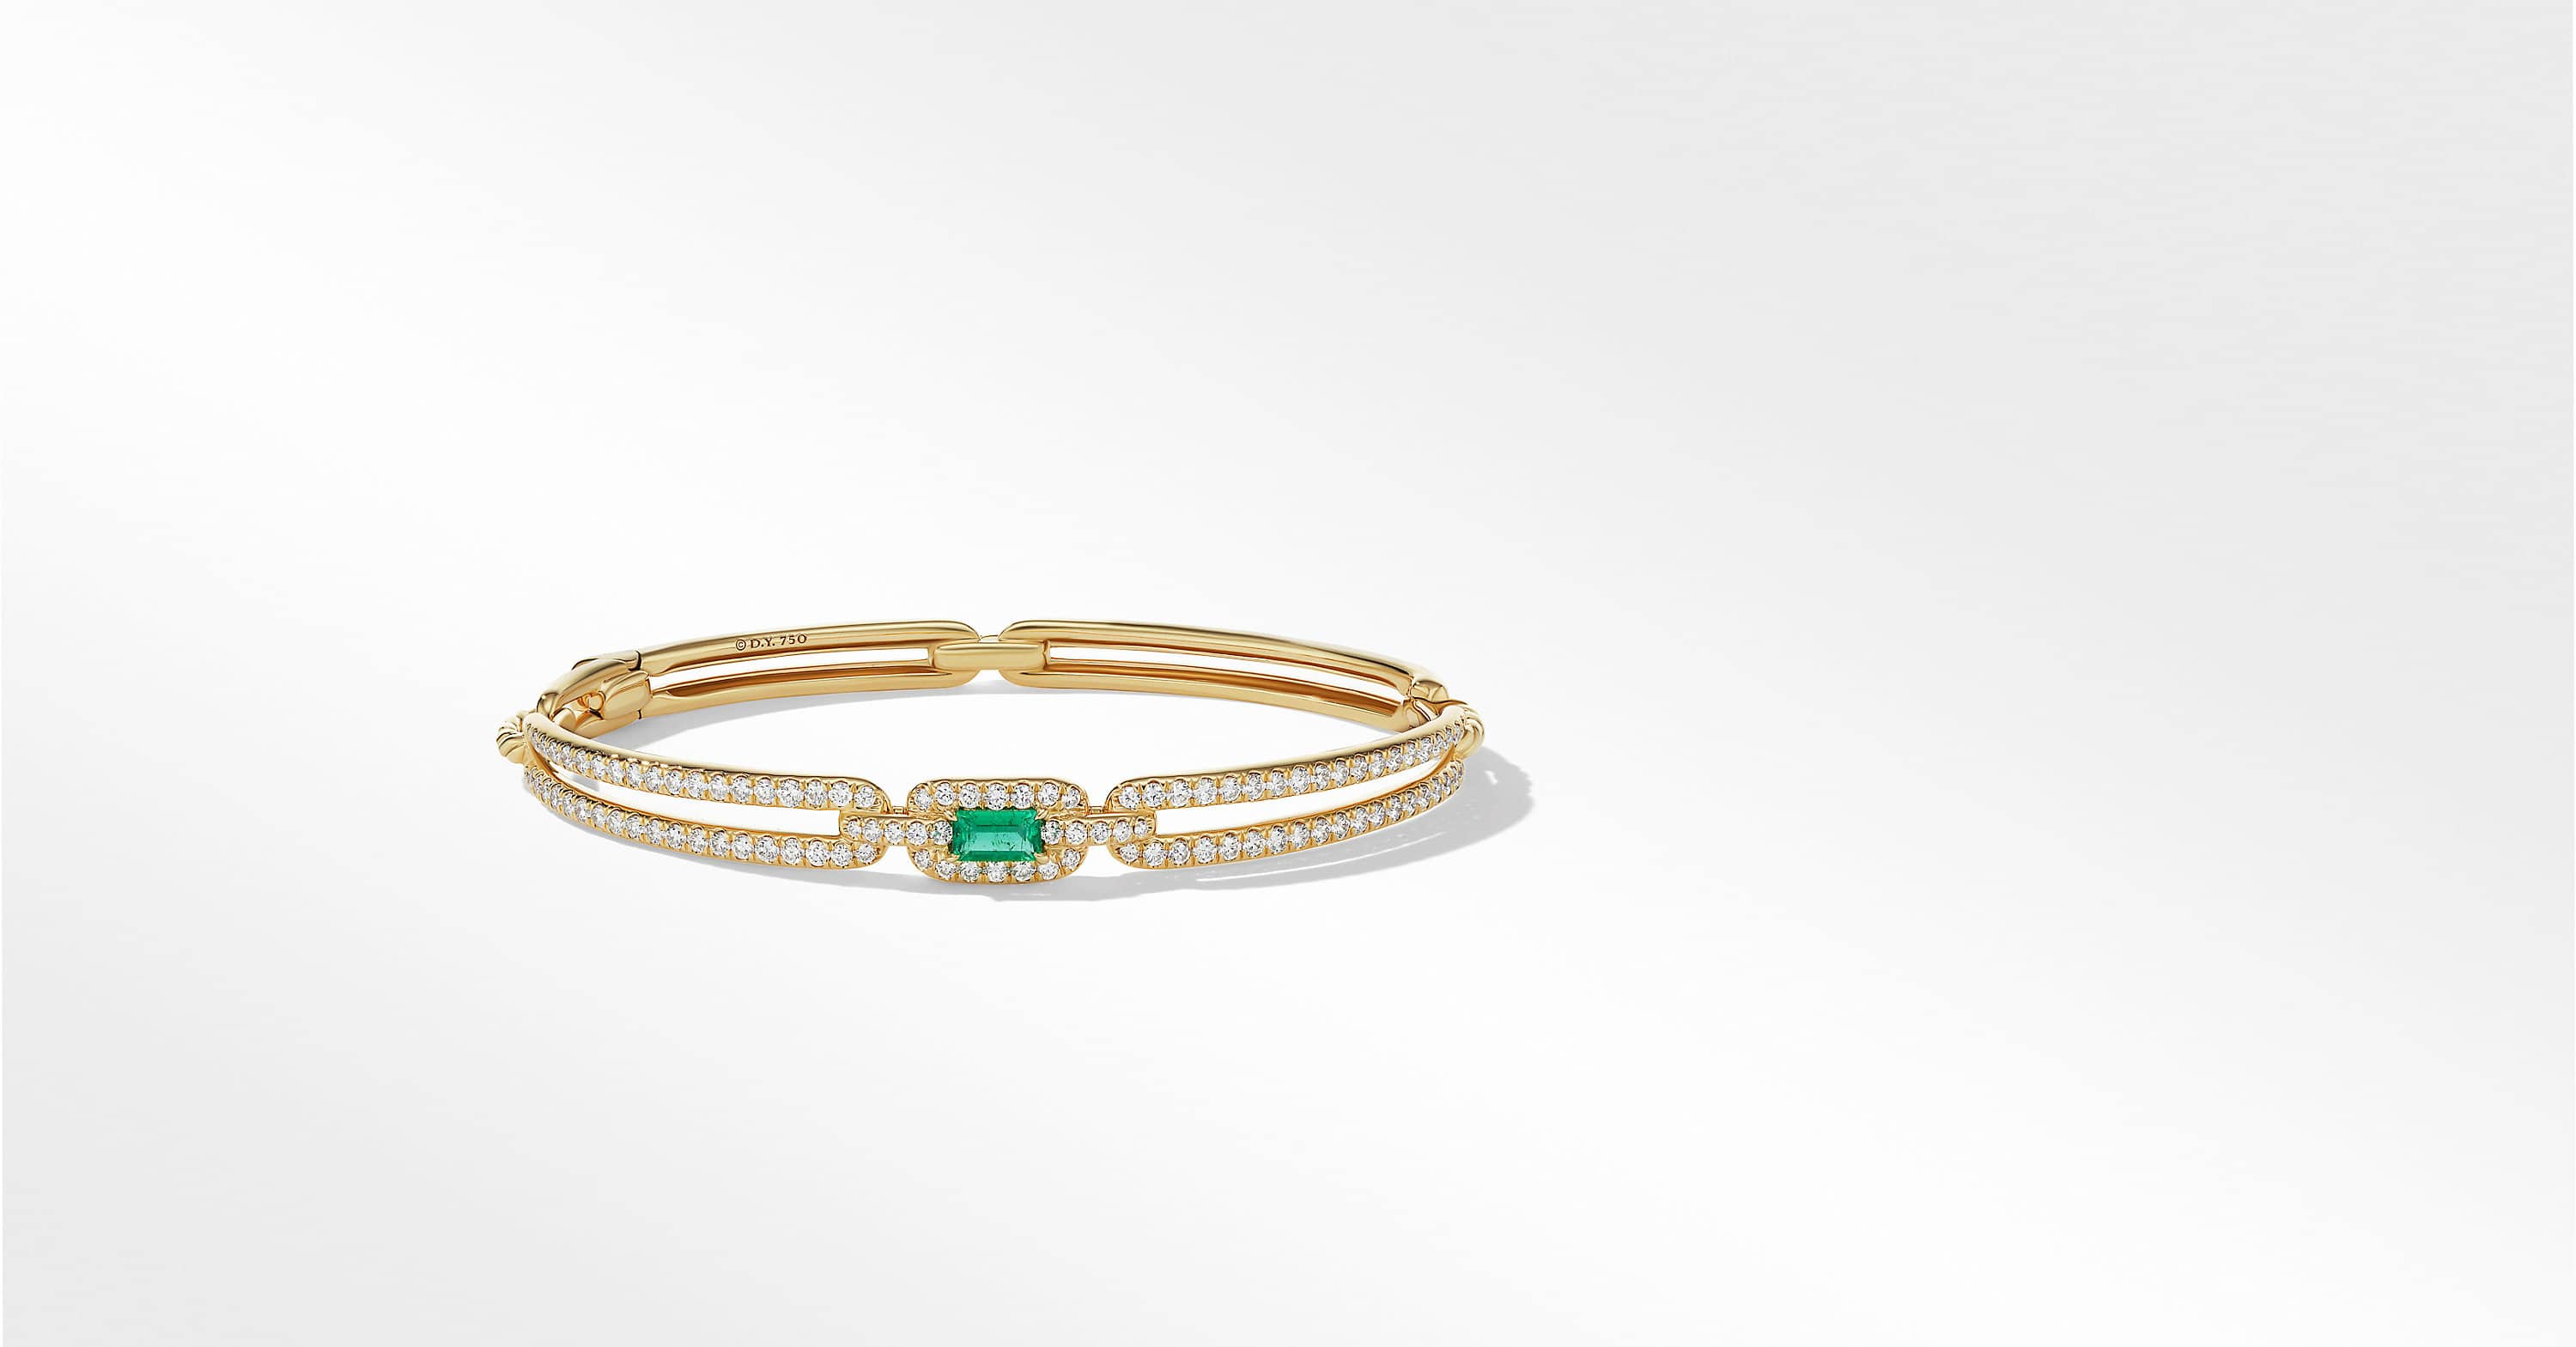 Stax Single Link Bracelet in 18K Yellow Gold with Diamonds, 7mm